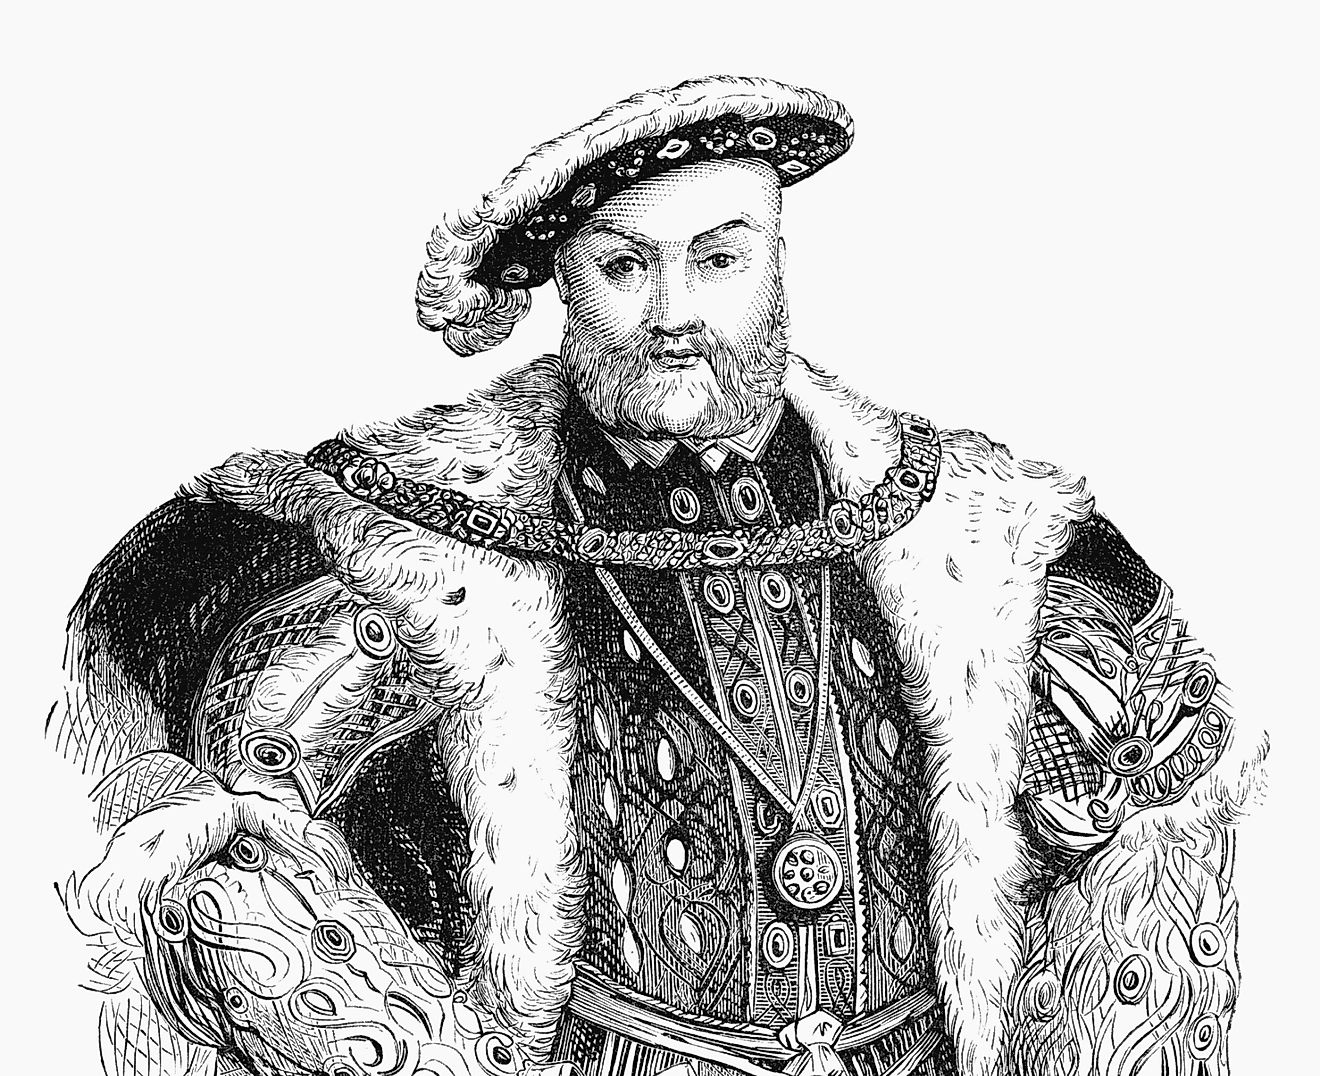 Henry VIII is well known for forming an Anglican Church independent from the Papal authority in Rome, as well as for his multiple spouses.